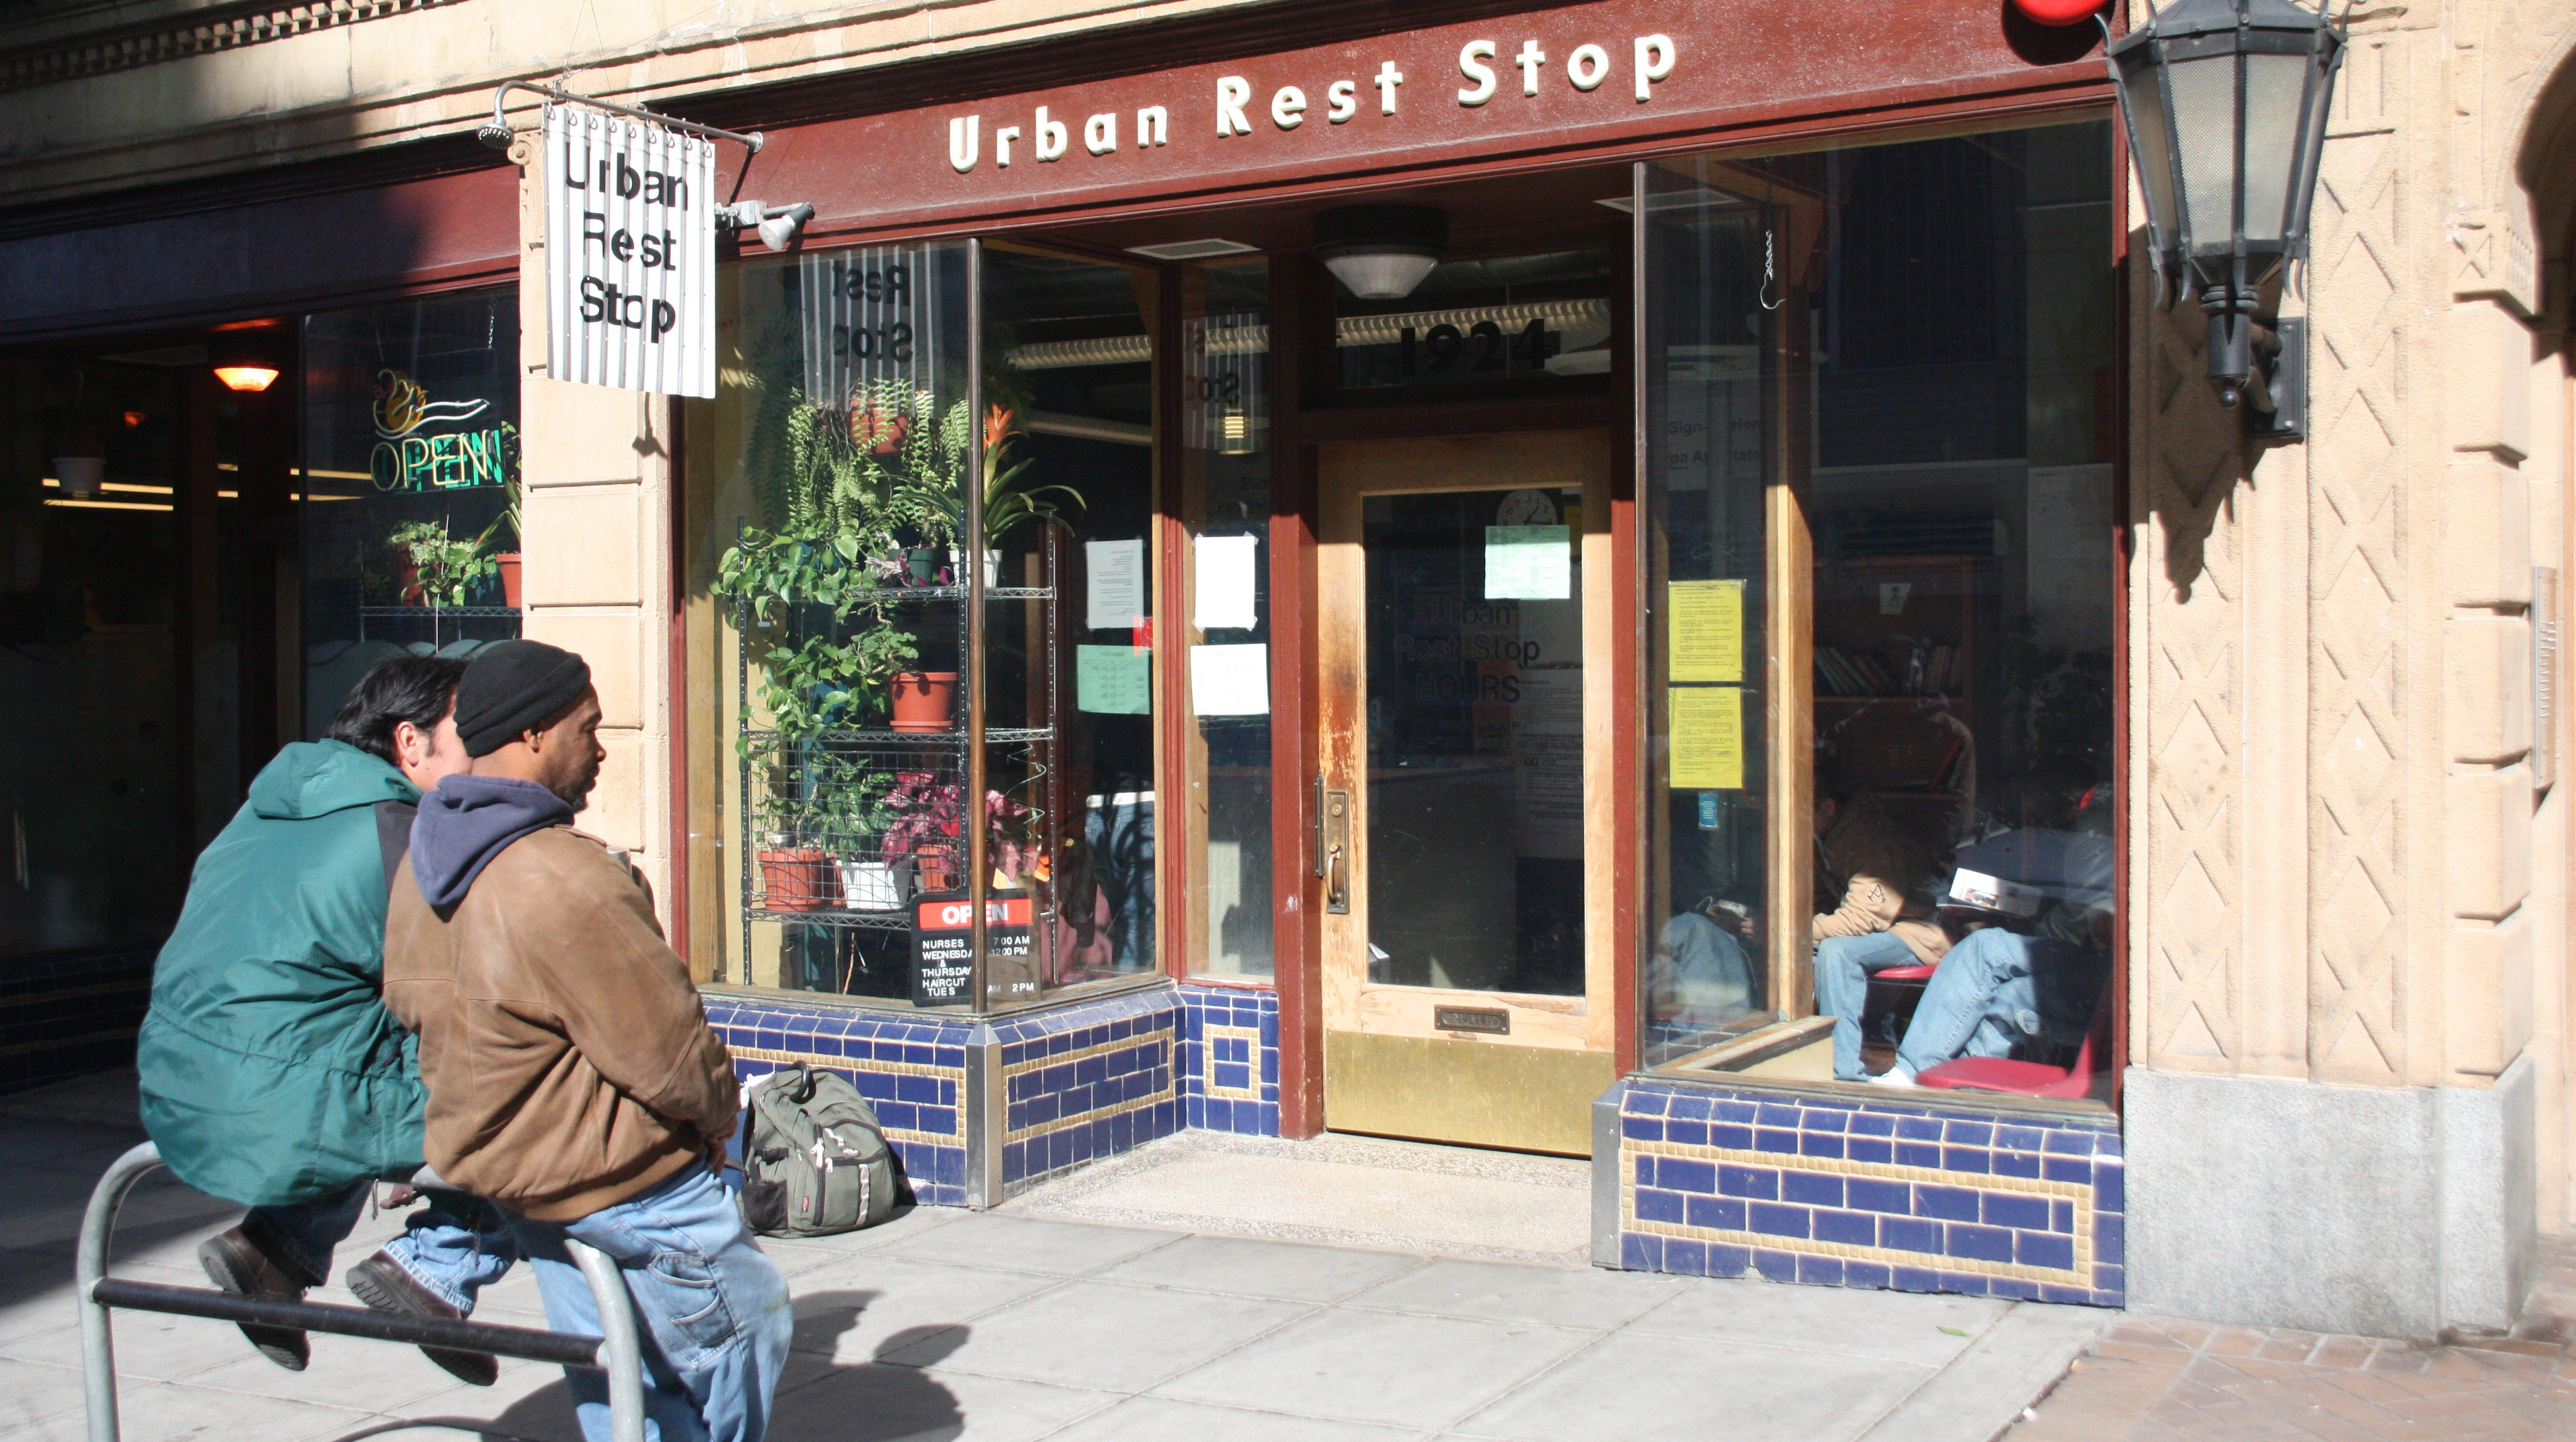 Urban rest stops low income housing institute urban rest stop website urs sunny day img0056 publicscrutiny Image collections